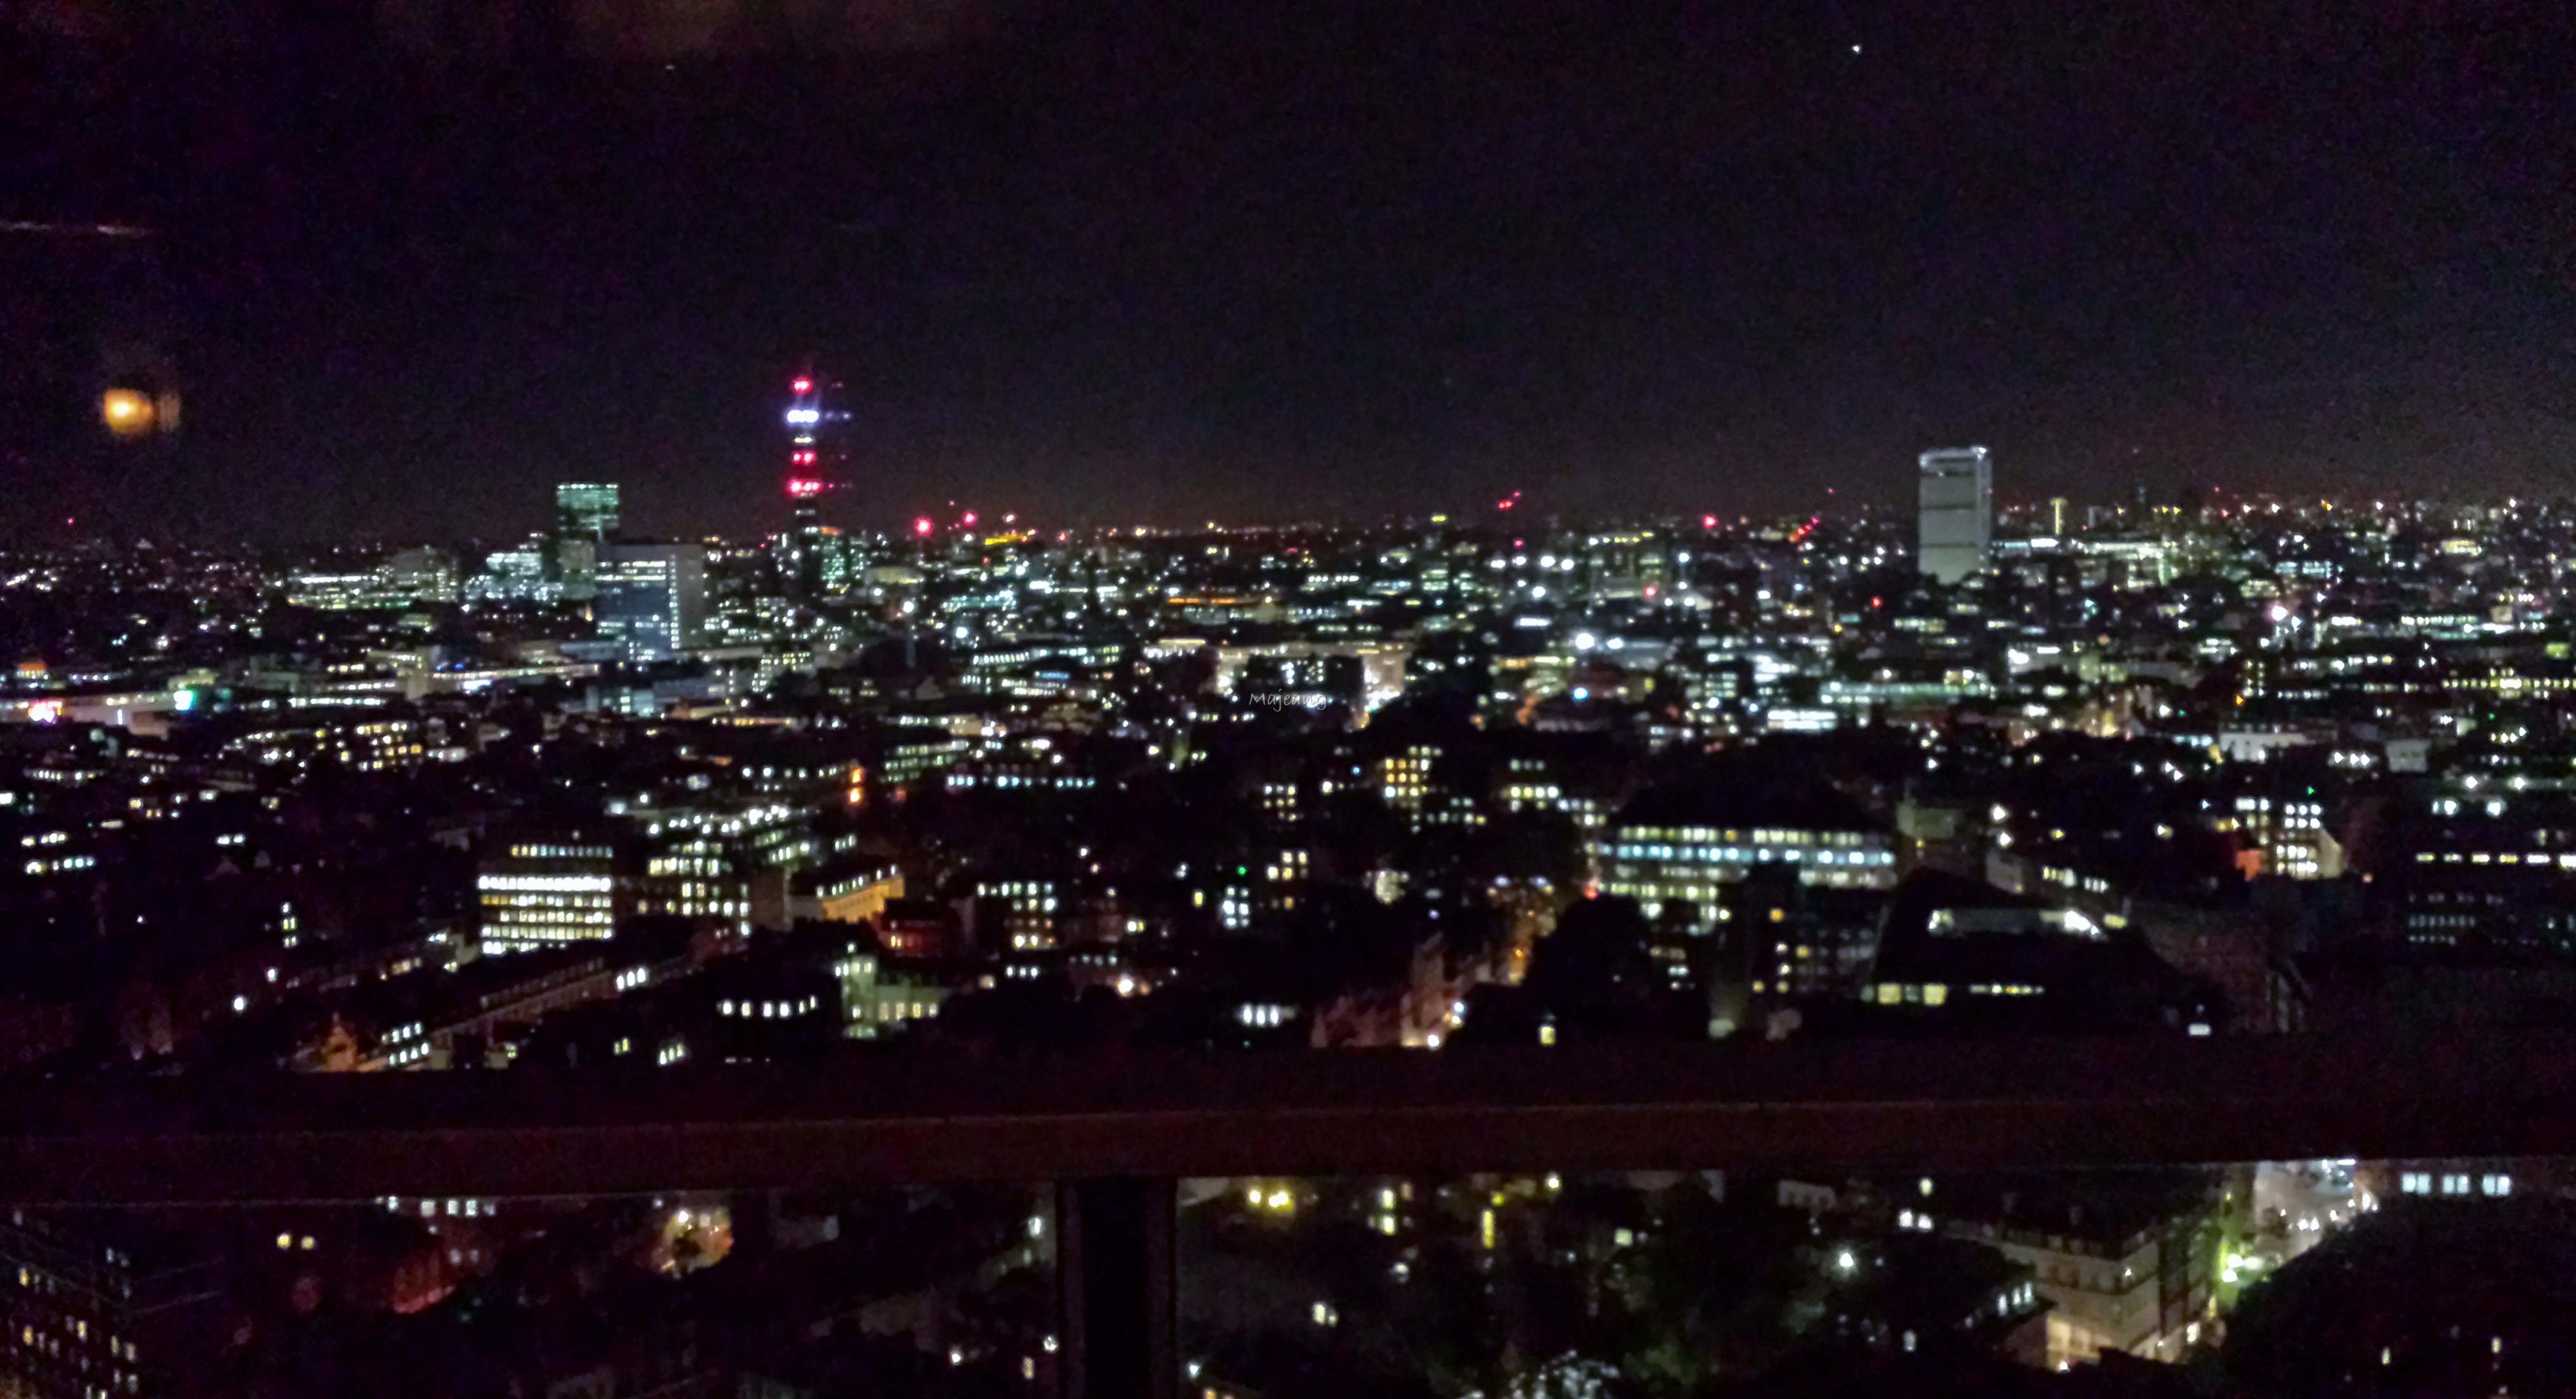 Sky view at night, La Nuit at Galvin Windows